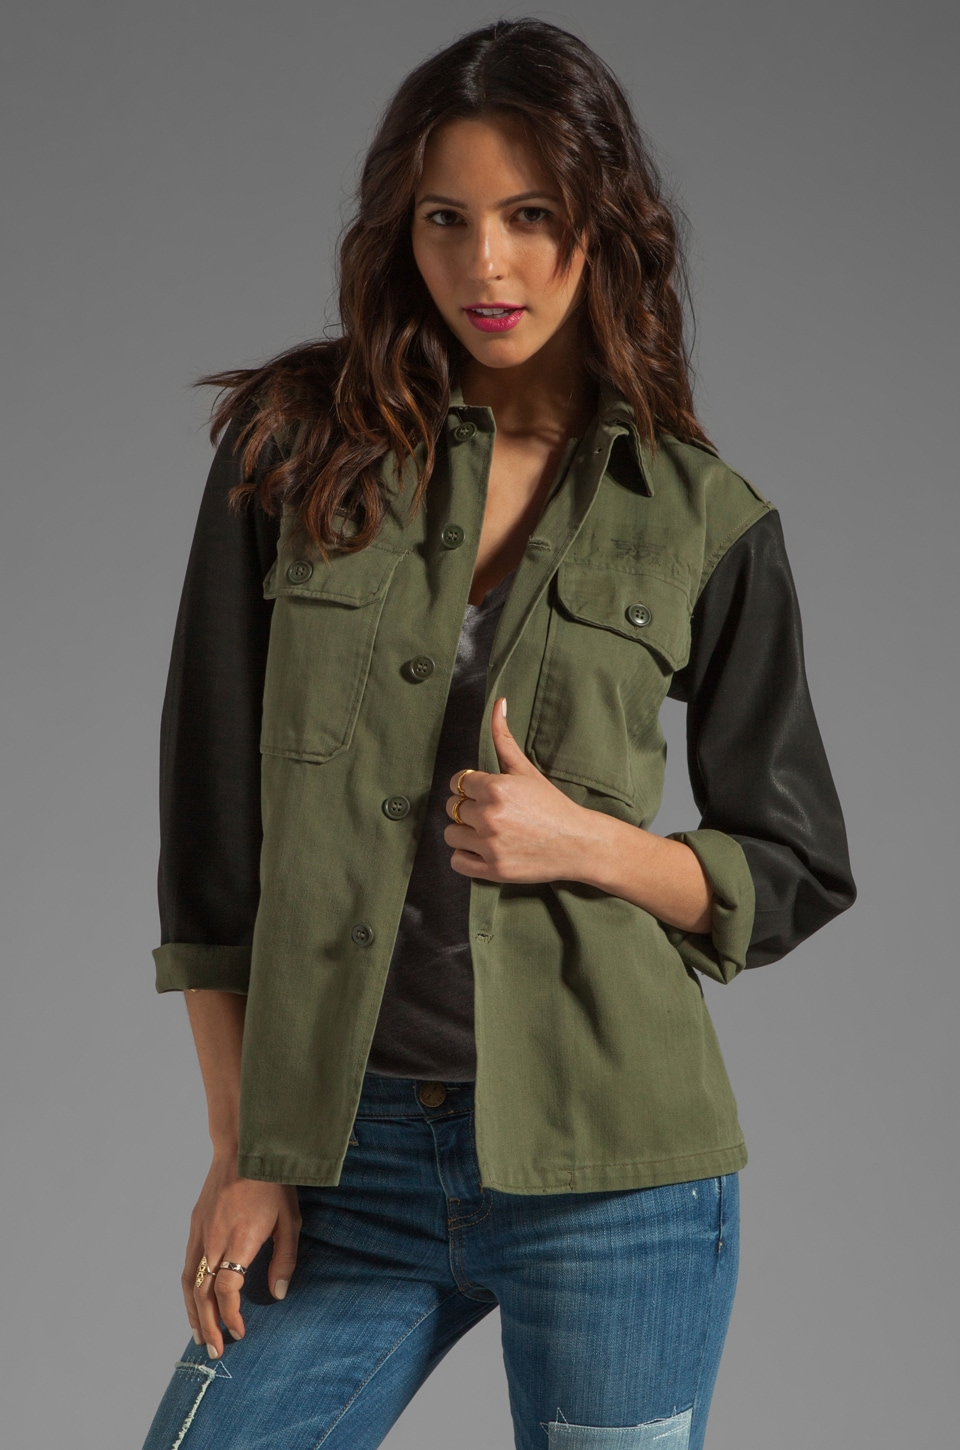 Tylie Vintage Redux Military Jacket with Spray Sleeves in Army Green/Black